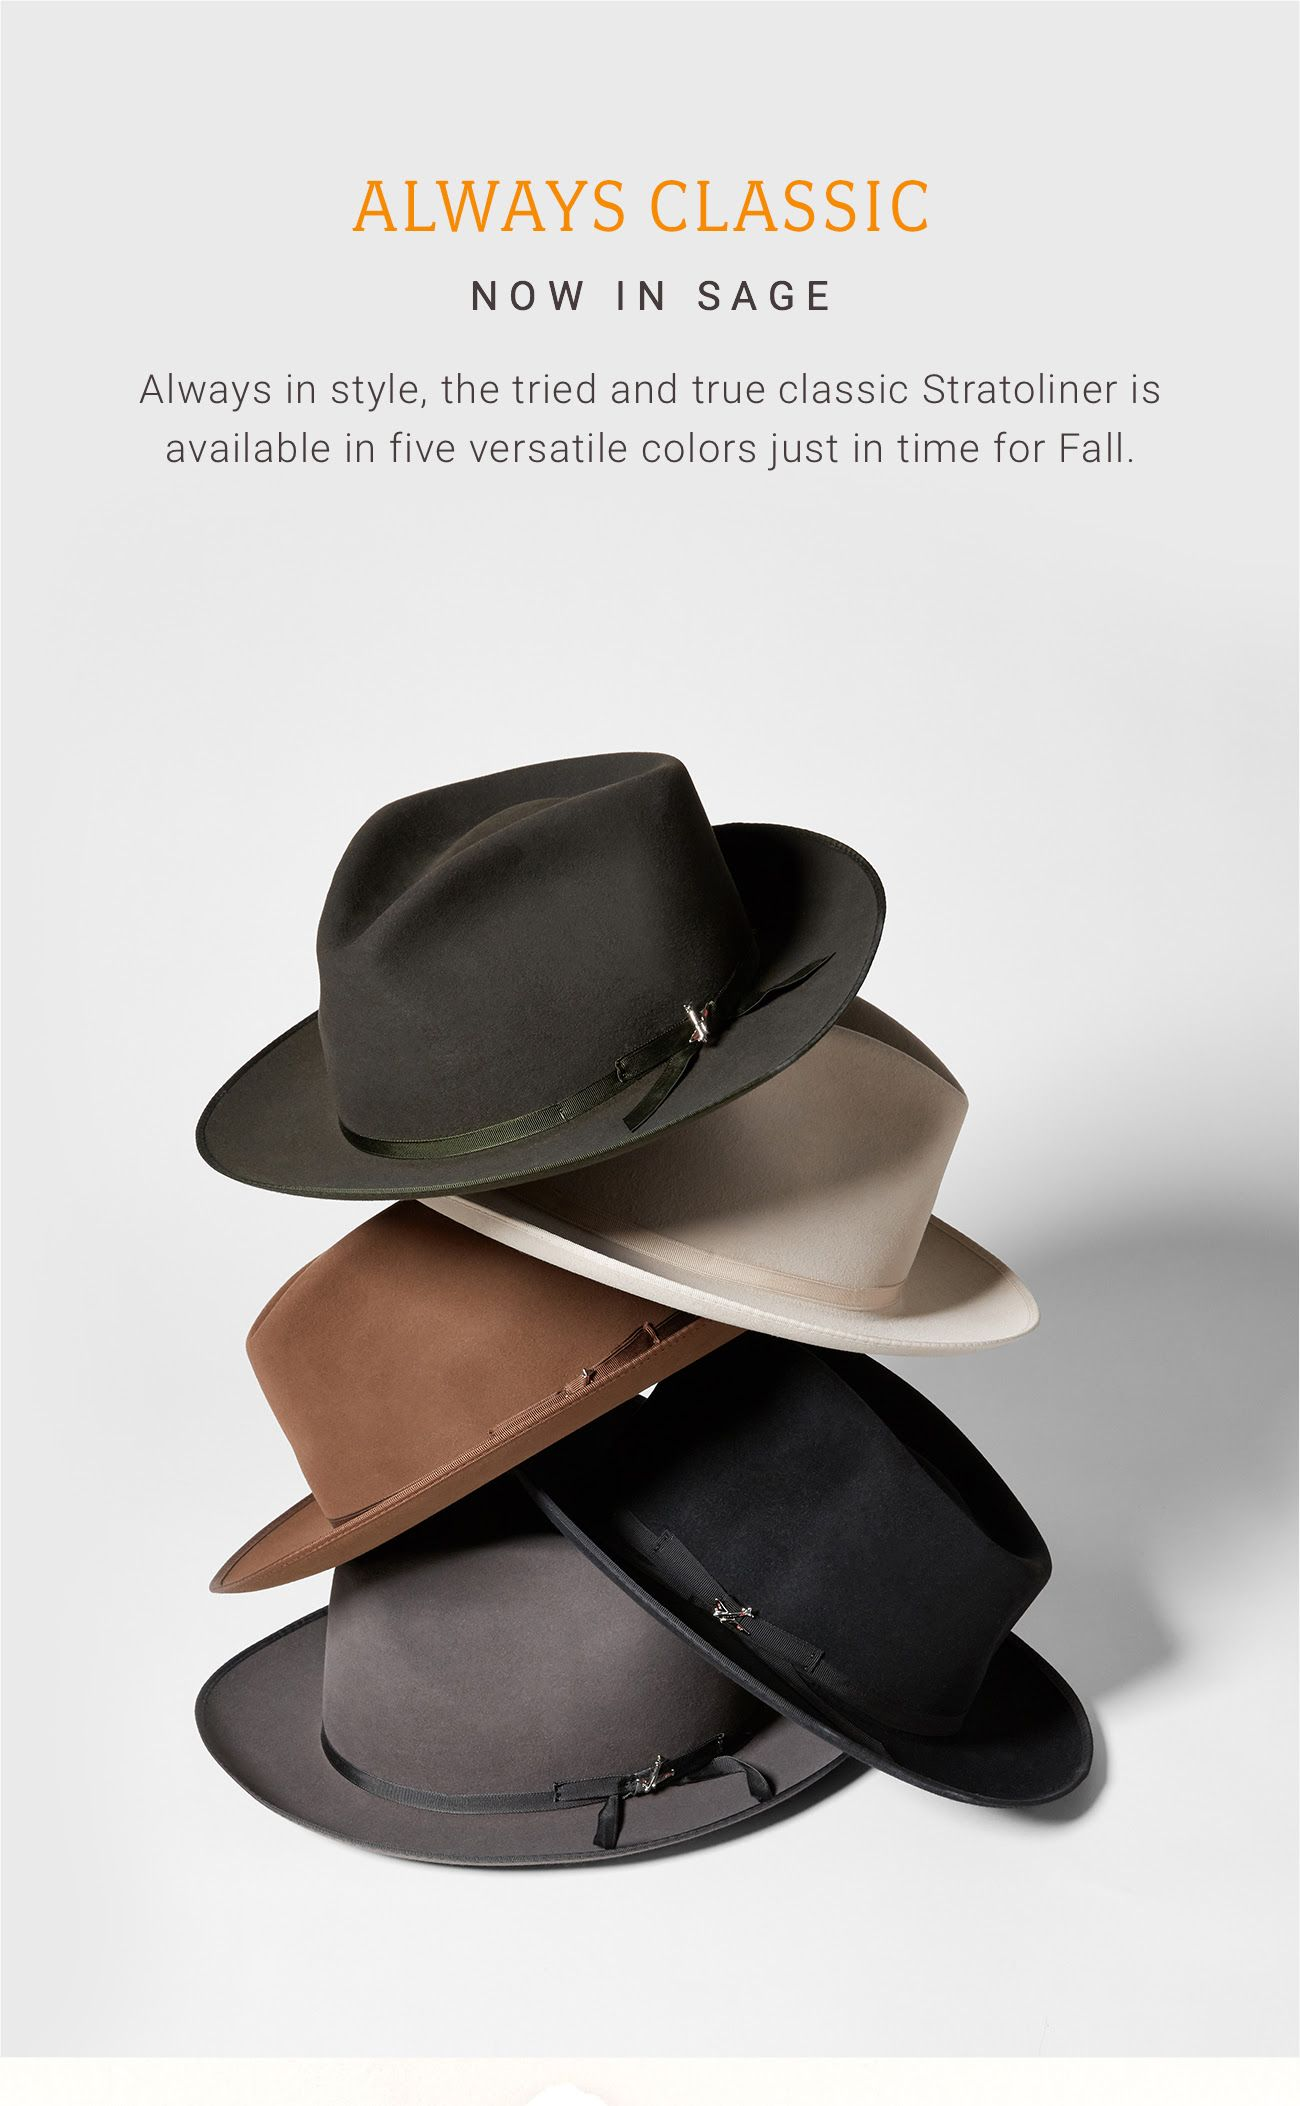 a8c59741 Stetson Stratoliner now available in Sage | Fedora Friday | Hats ...